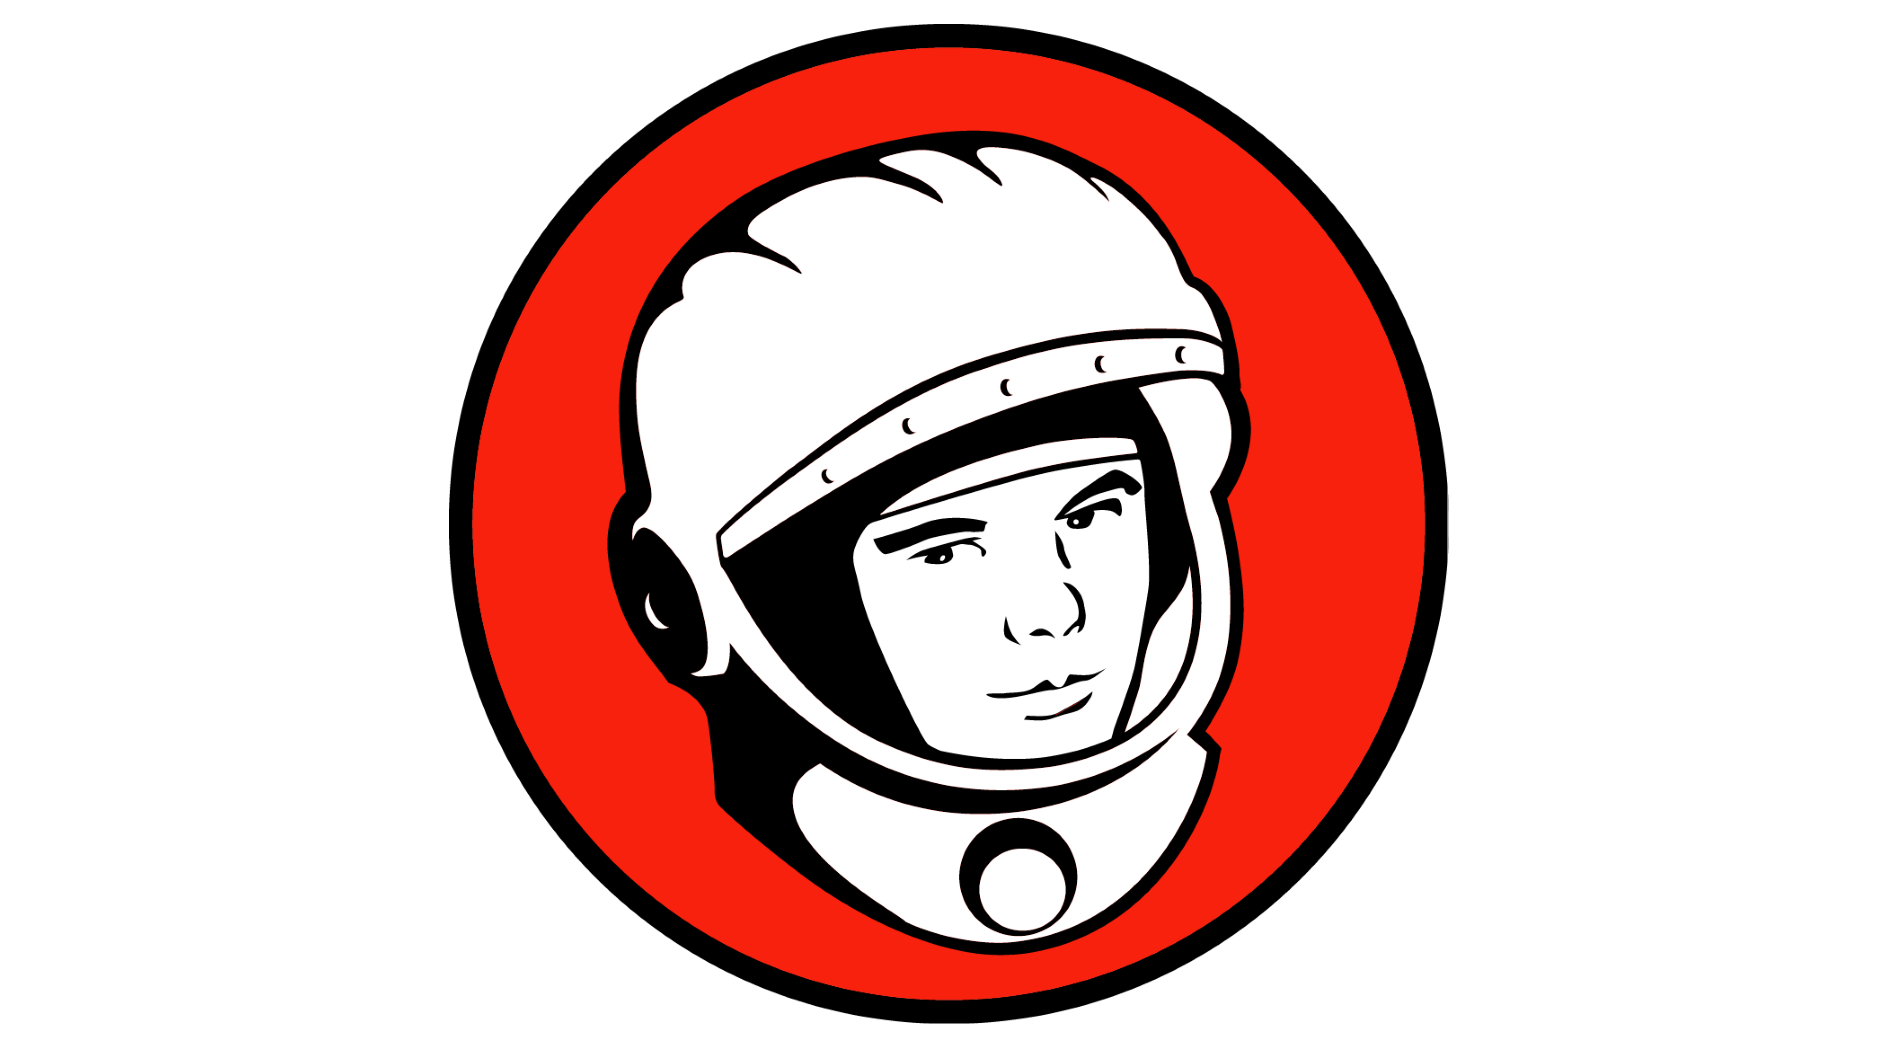 Space shuttle archives today. Universe clipart mission to mars